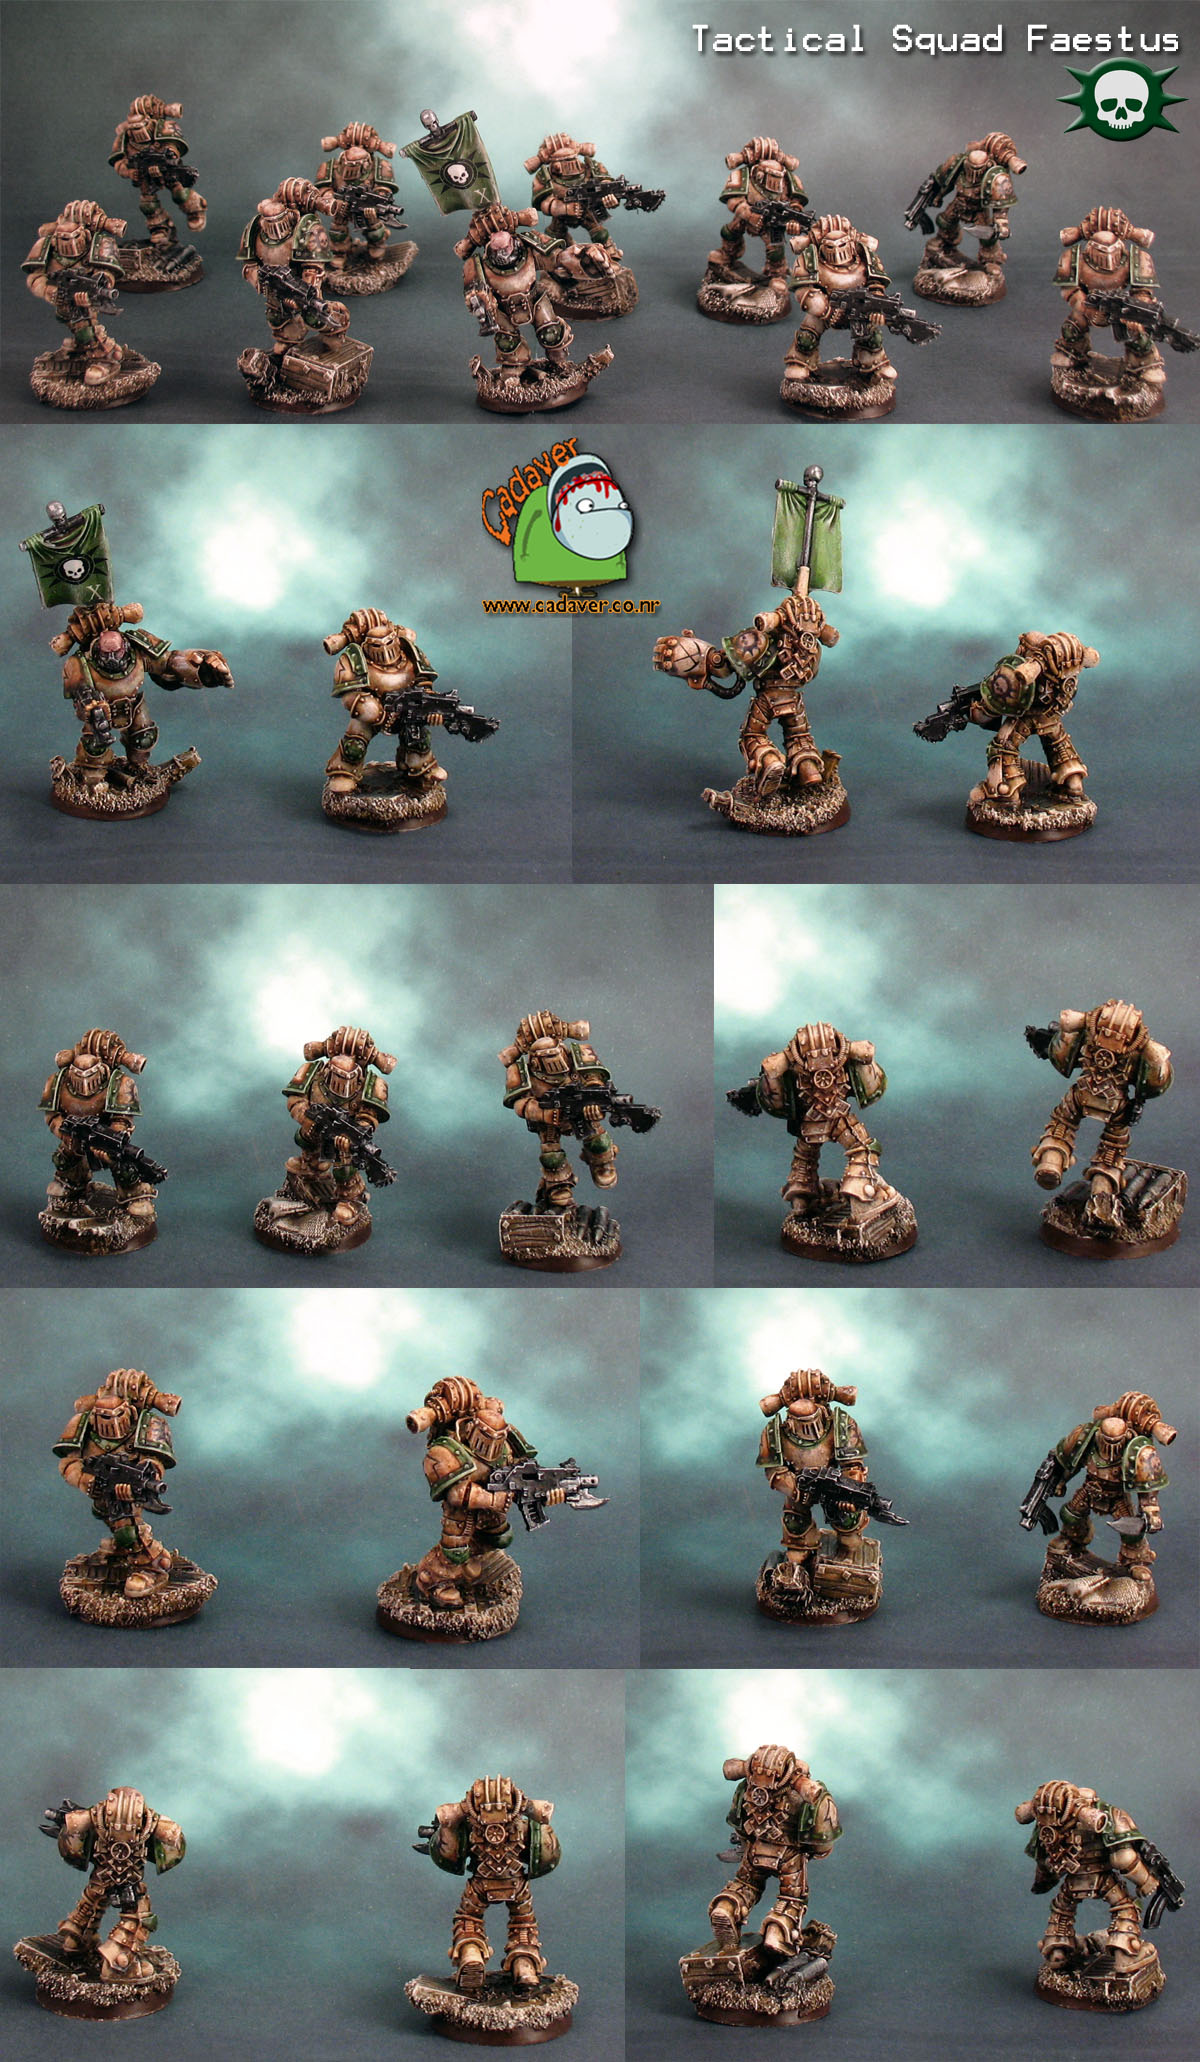 Pre Heresy Death Guard Tactical Squad